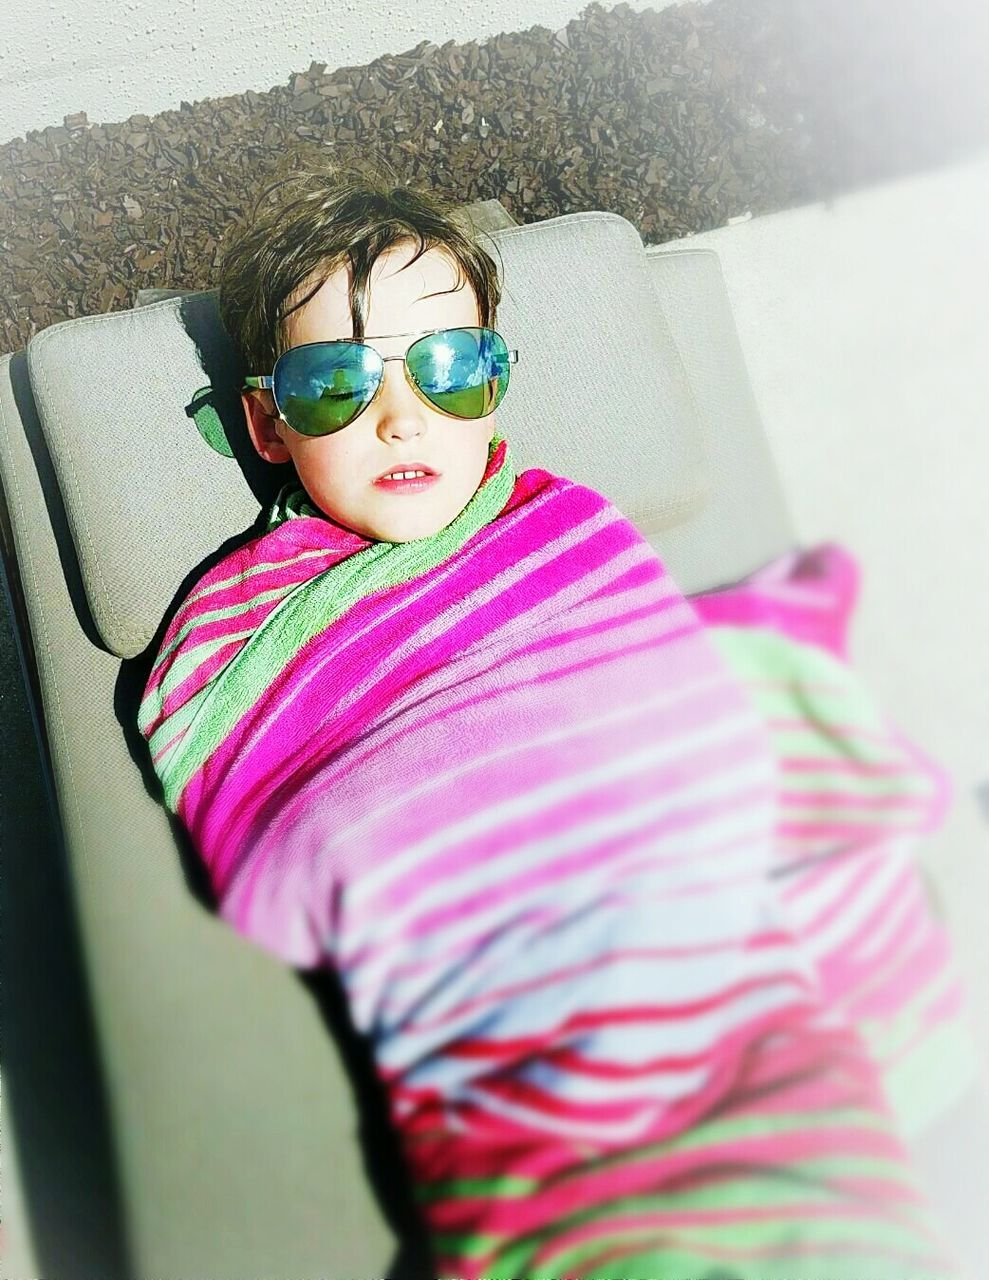 sunglasses, childhood, elementary age, girls, eyeglasses, one person, high angle view, real people, leisure activity, lifestyles, boys, relaxation, child, day, outdoors, people